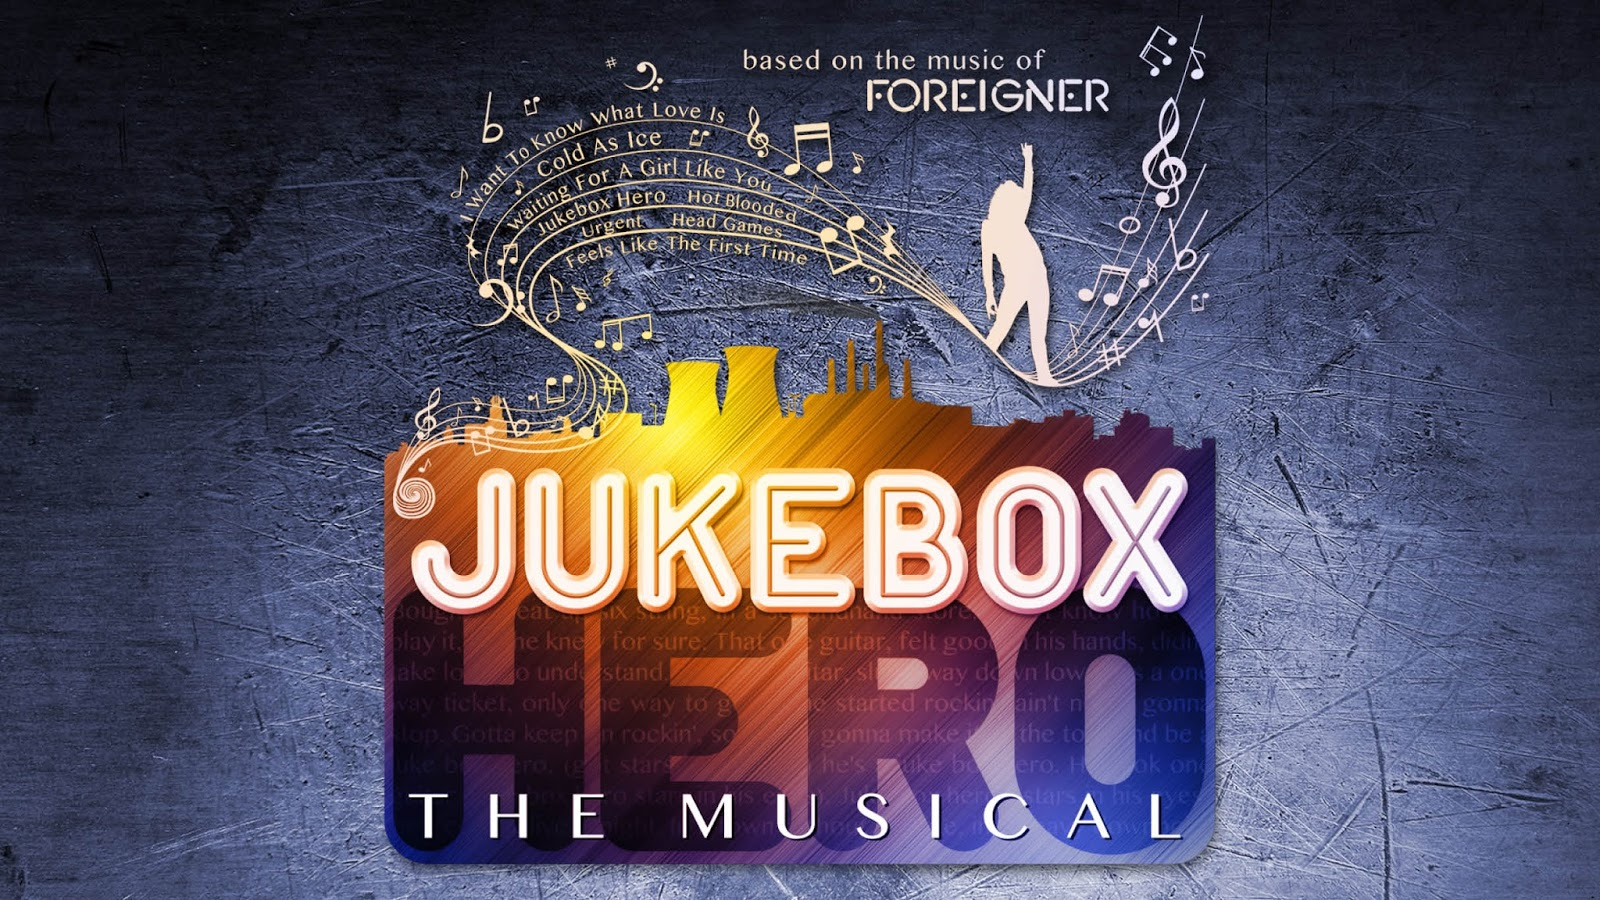 Foreigner.Jukebox Hero The Musical.logo.wide.10-17 (1).jpeg